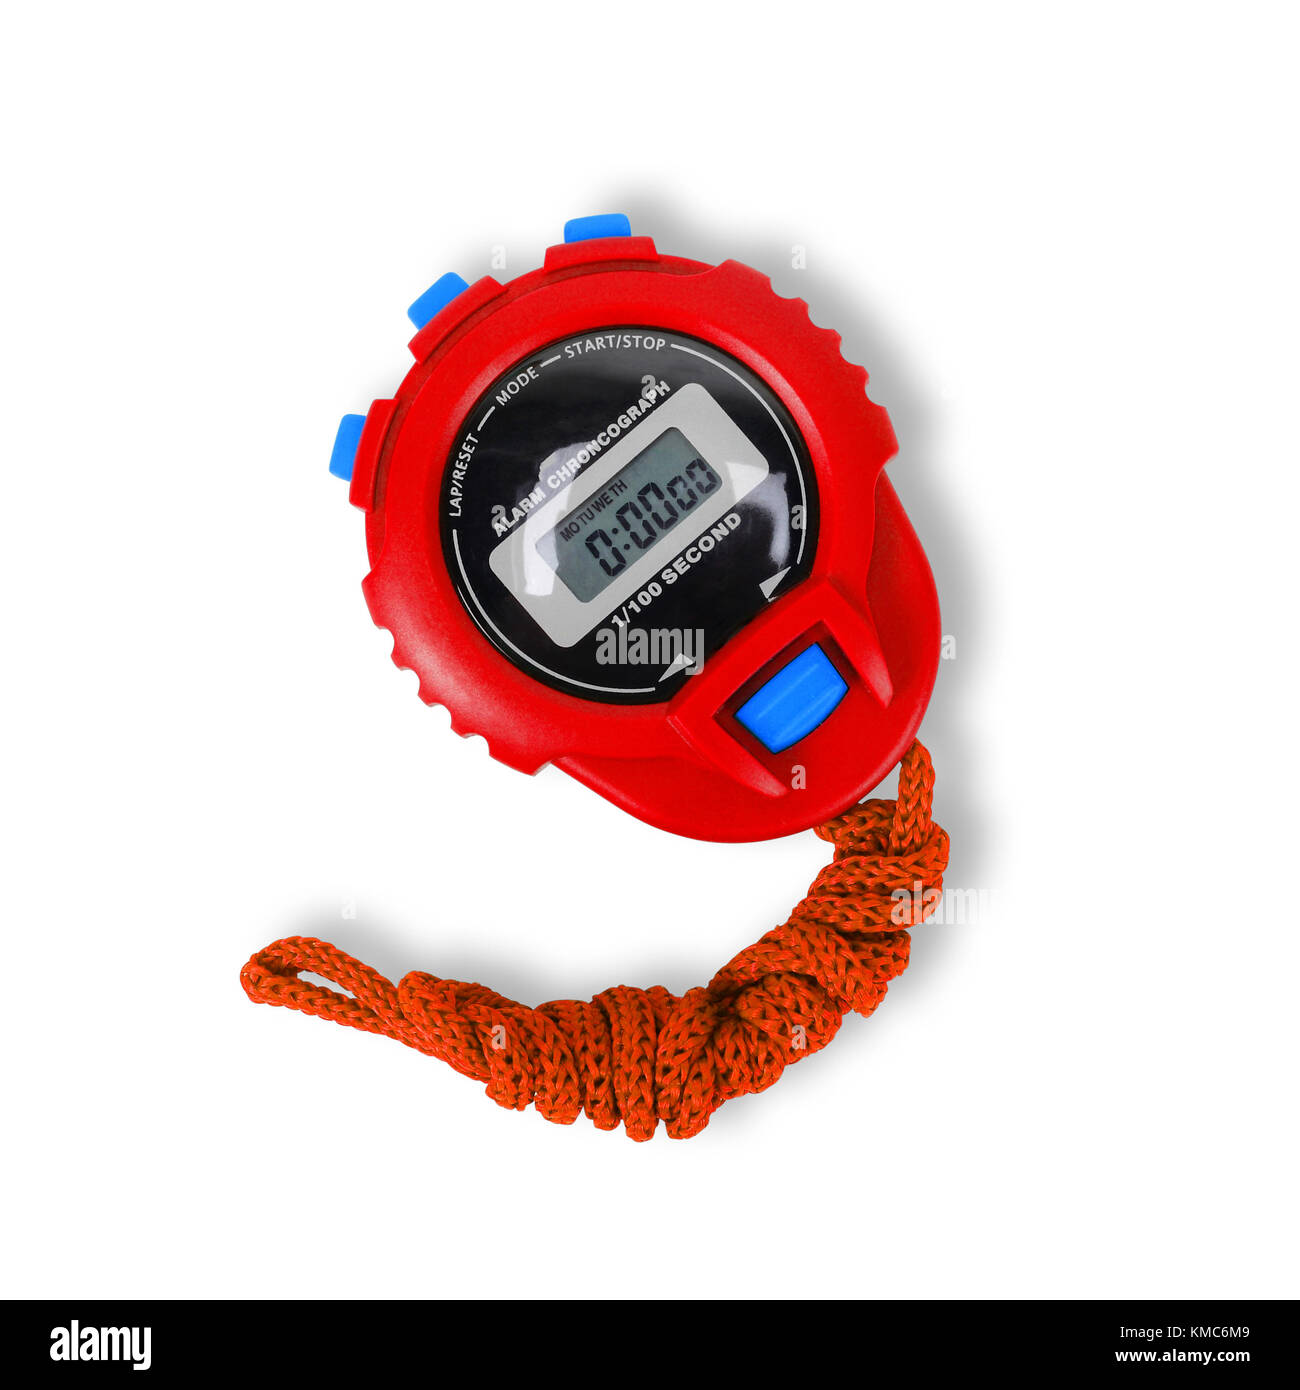 Sports equipment - Red Digital electronic Stopwatch on a white background. Isolated - Stock Image